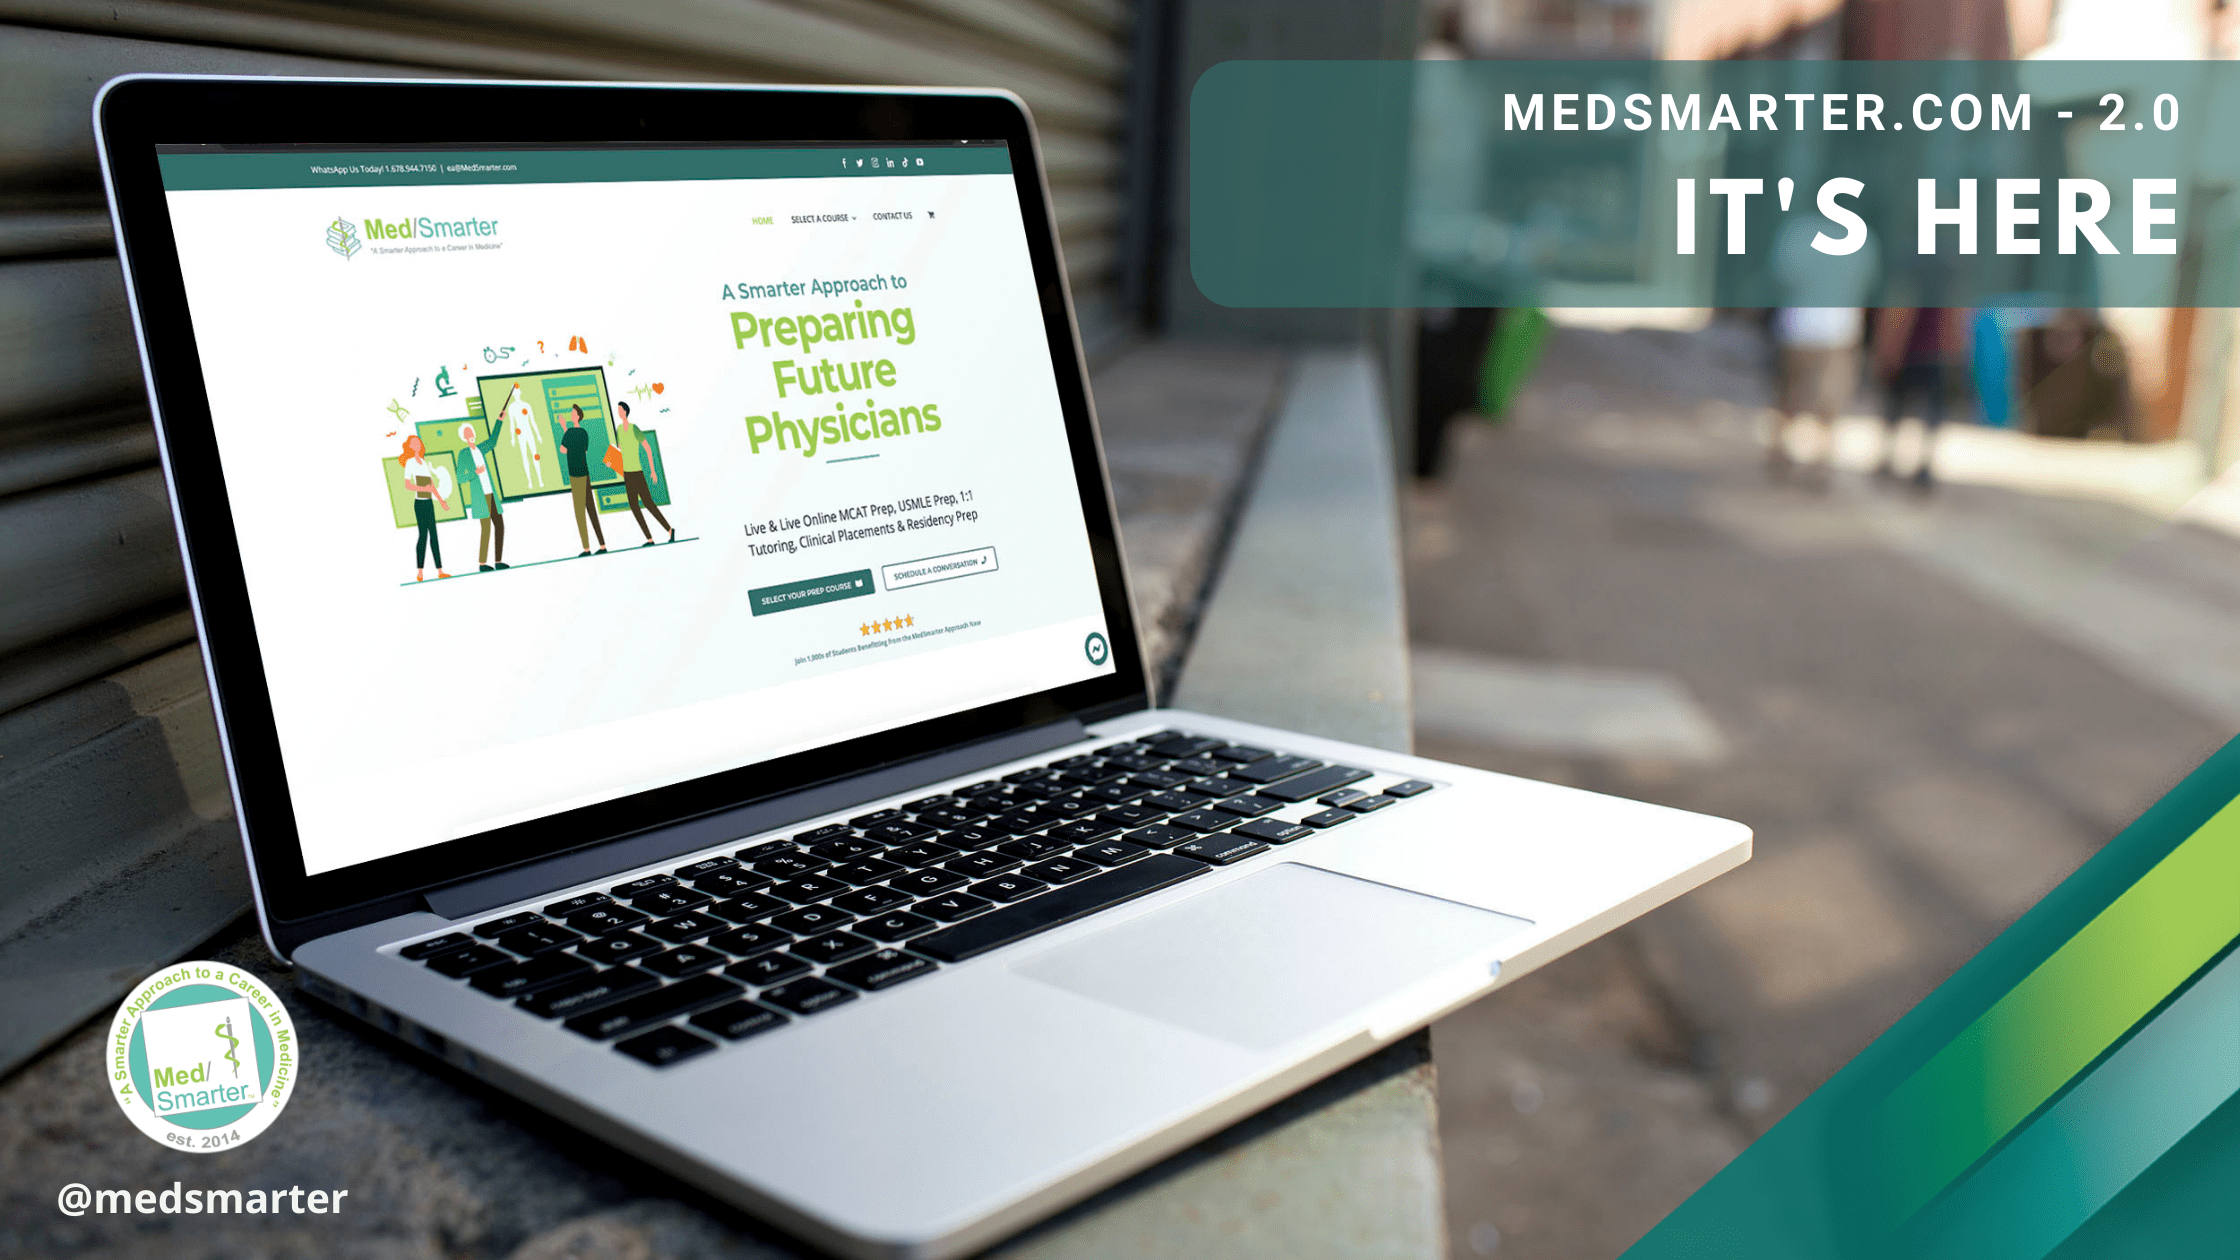 It's here! The Re-Designed Website Launch of MedSmarter.com 2.0